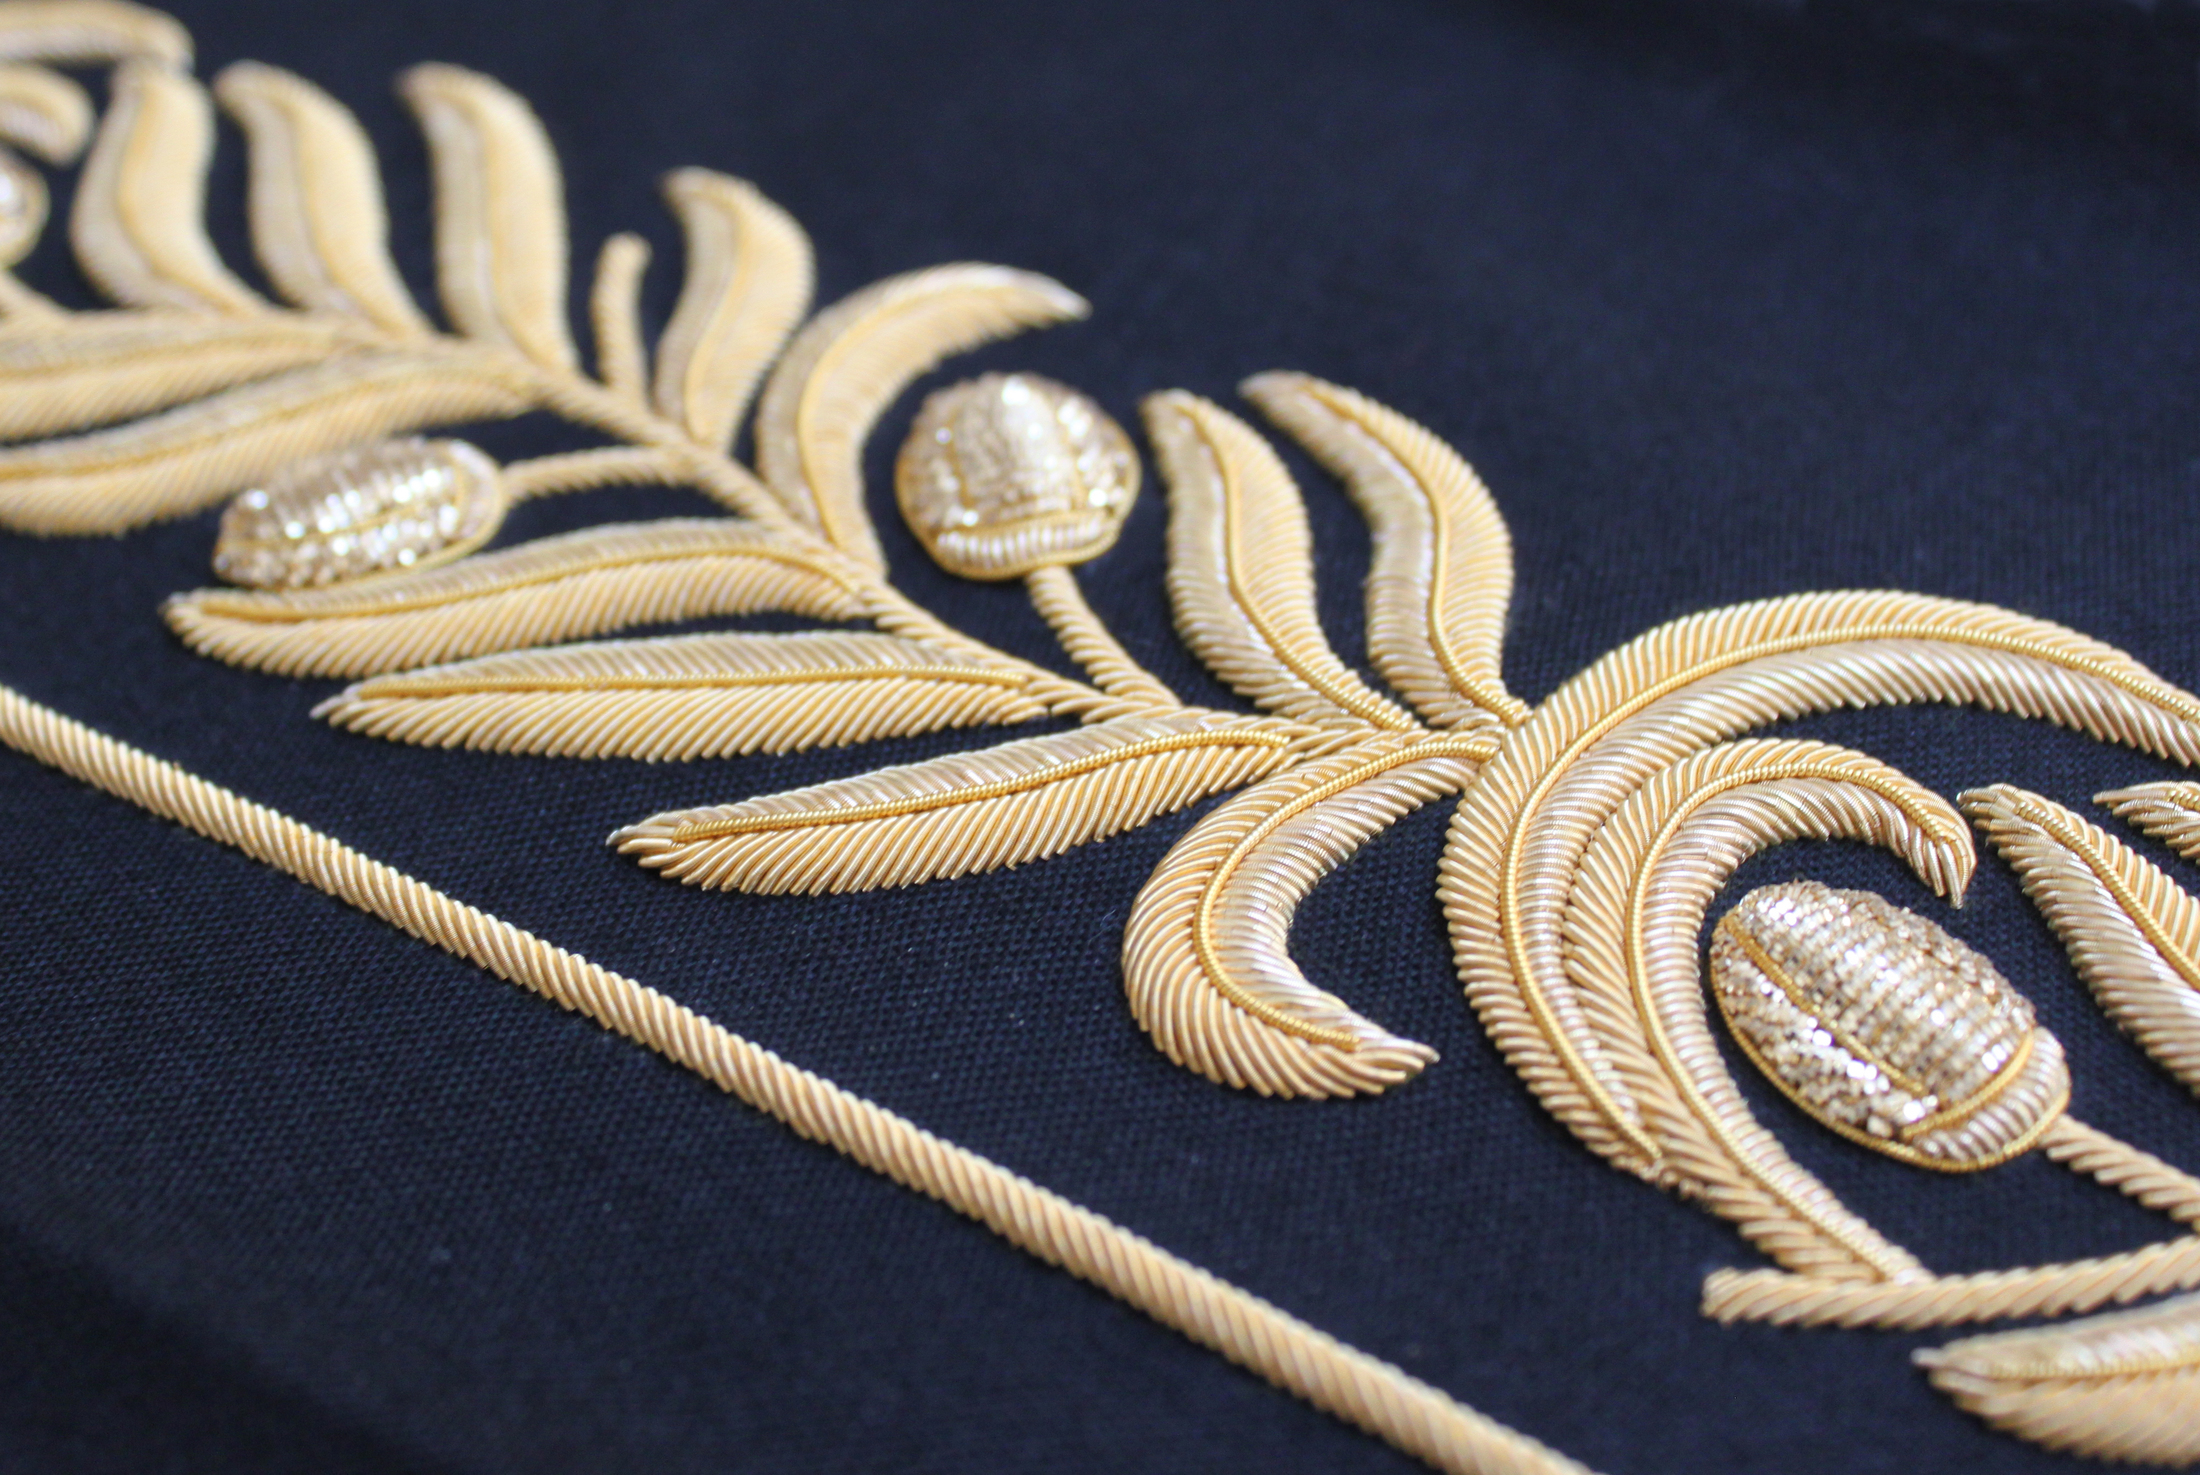 Hawthorne & Heaney and Goldwork by the London Embroidery School London Hand Embroidery